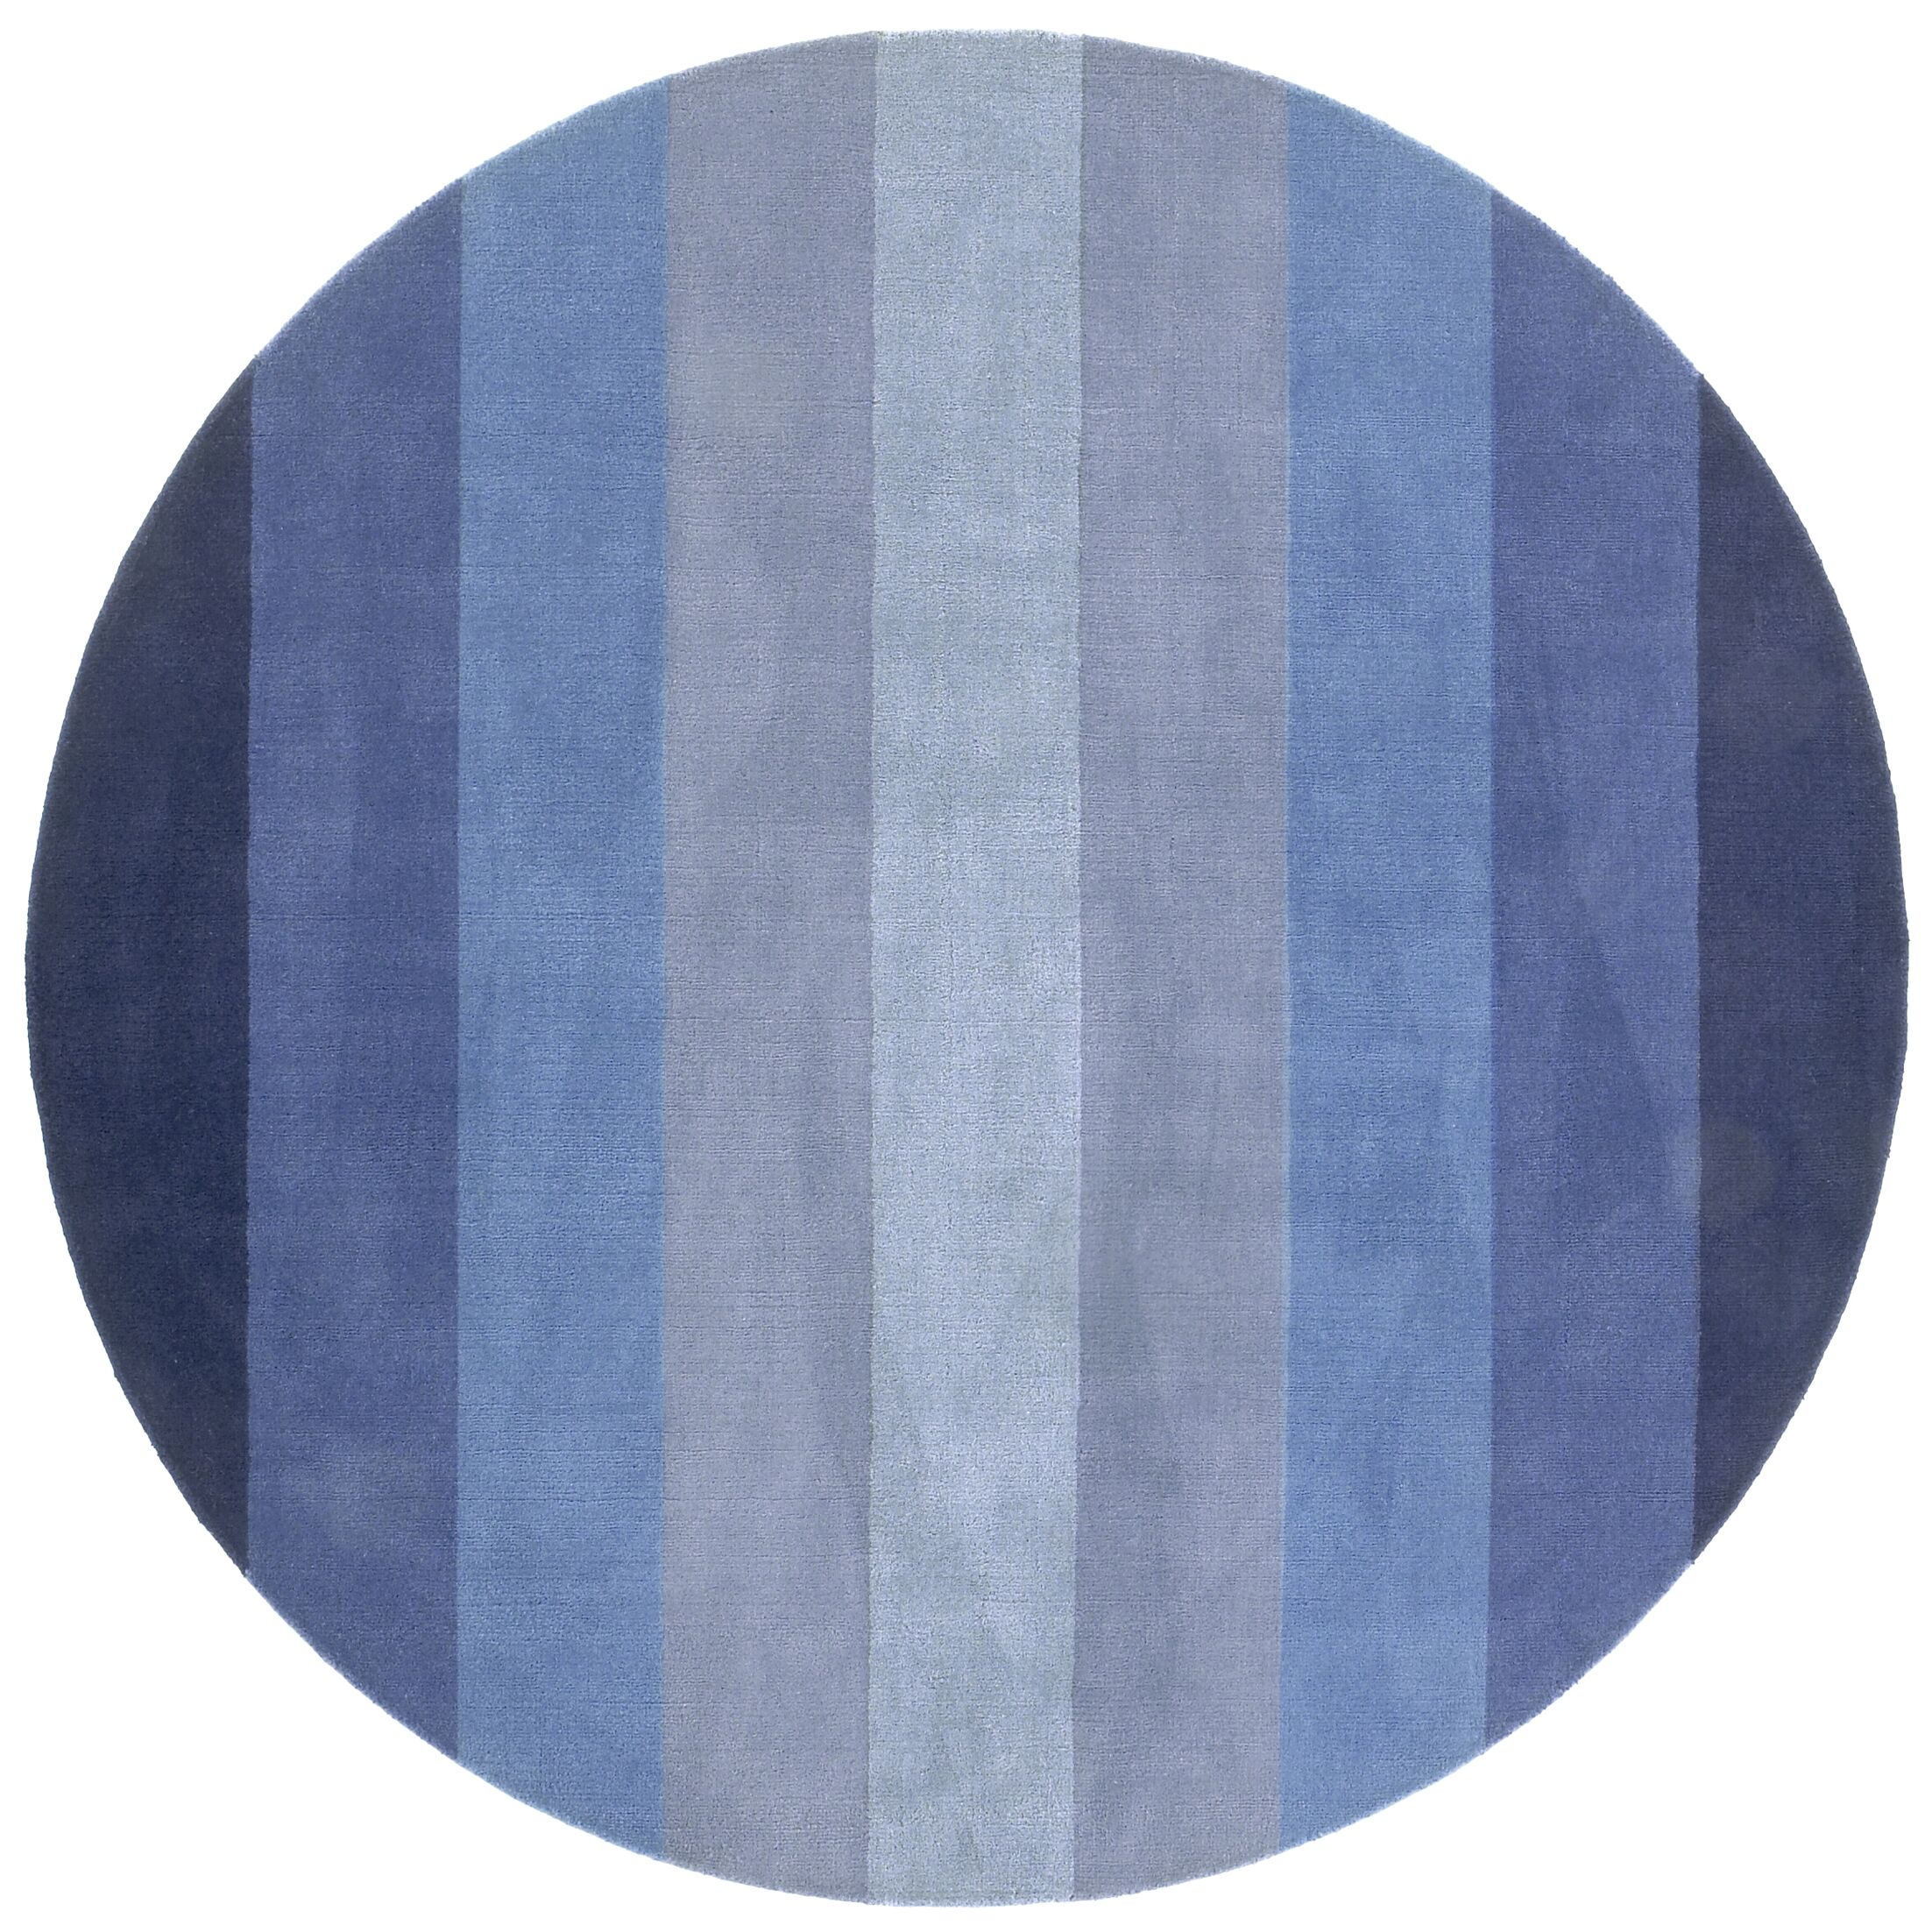 Degarmo Blue Stripes Area Rug Rug Size: Round 8'